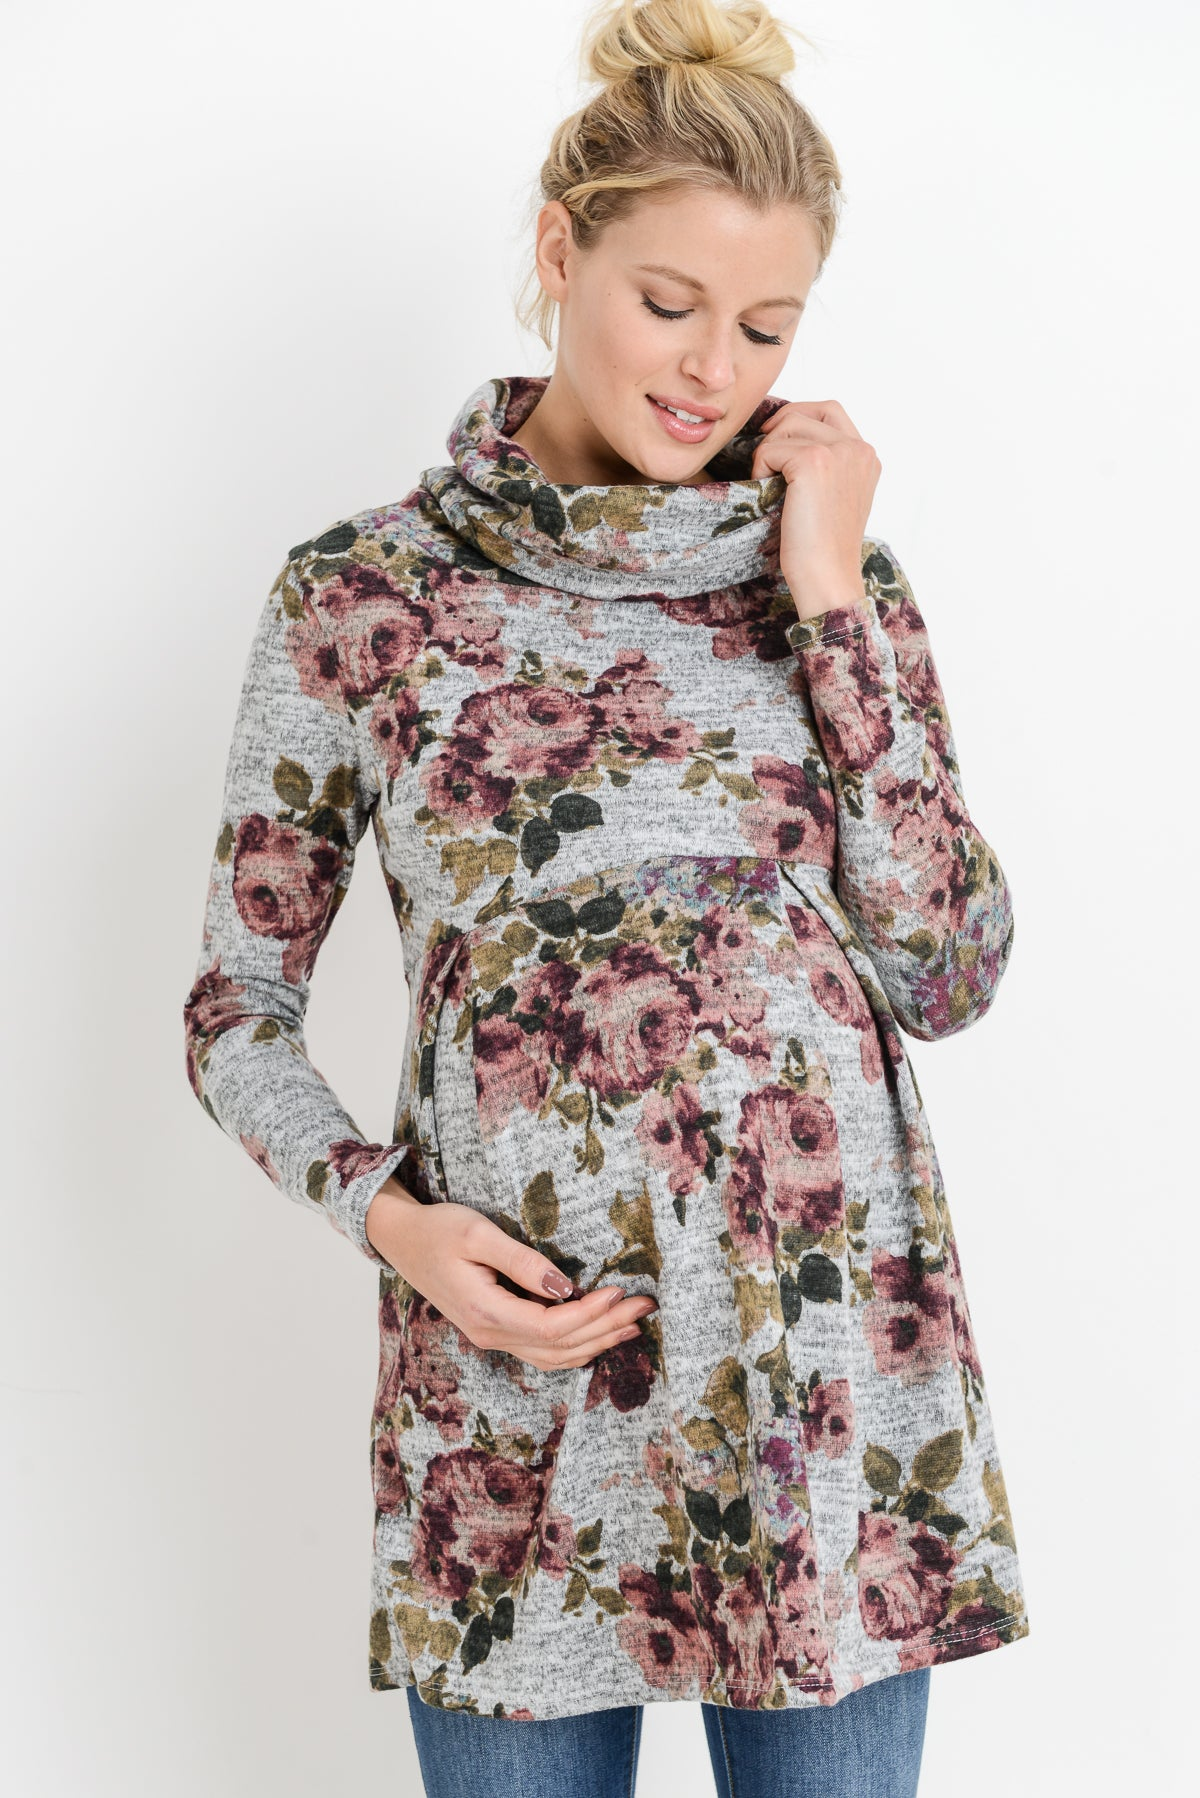 Floral Cowl Neck Maternity Tunic